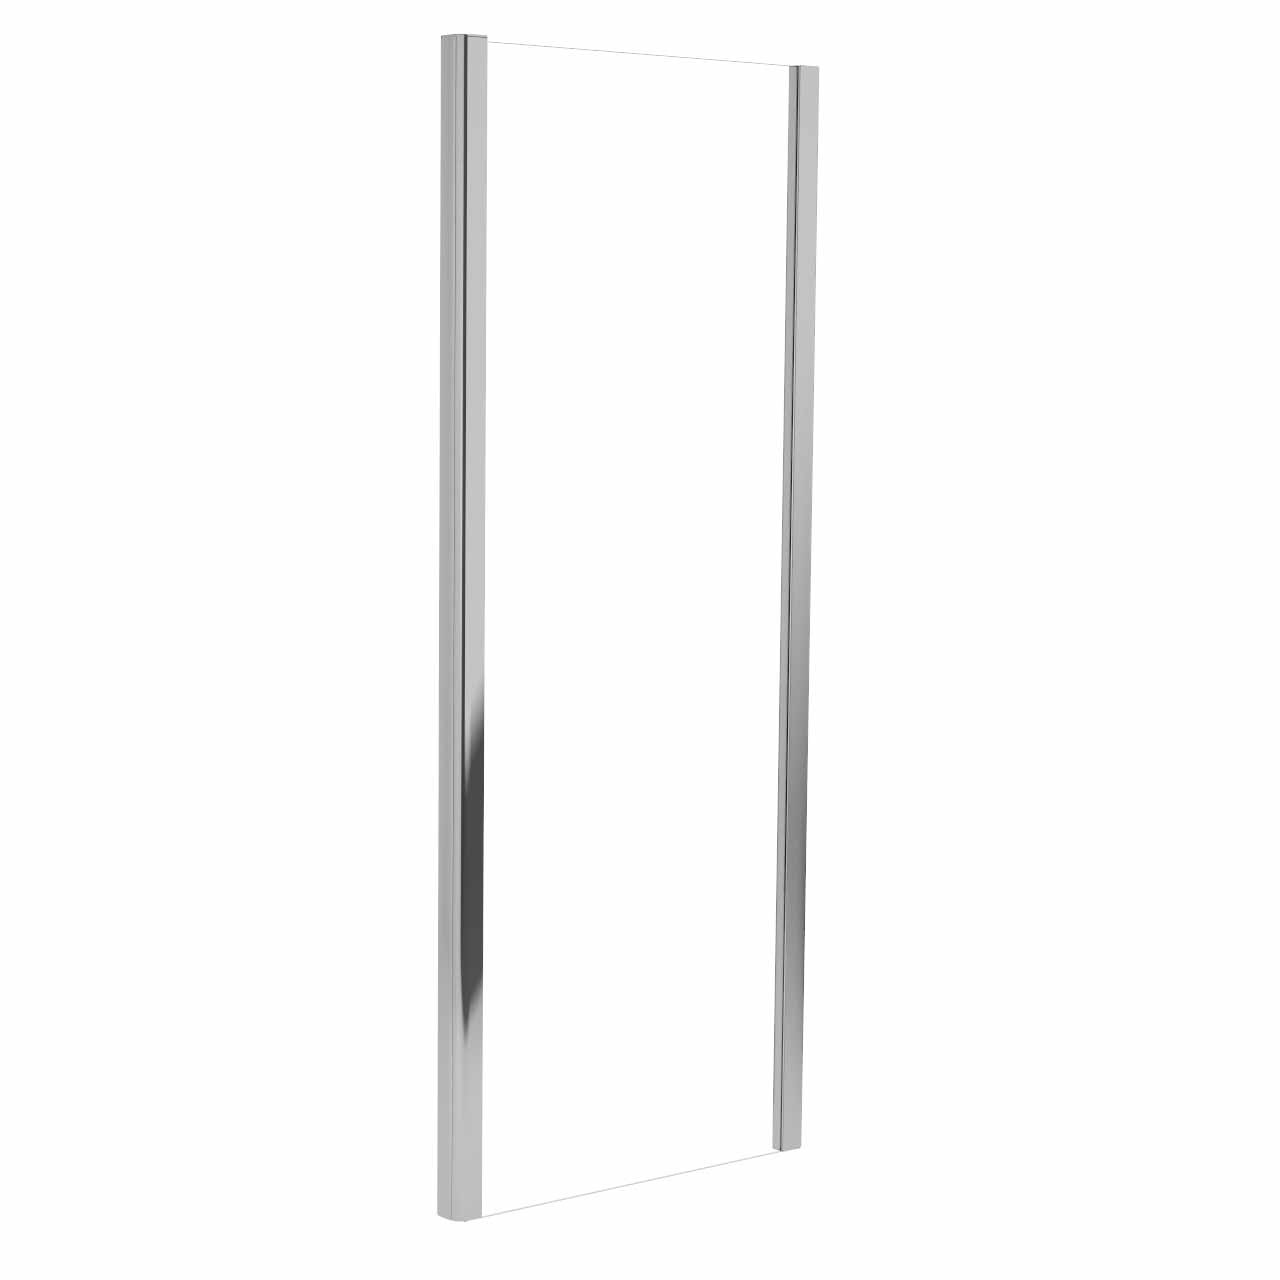 Series 8 Plus 1000 x 760 Sliding Door Enclosure